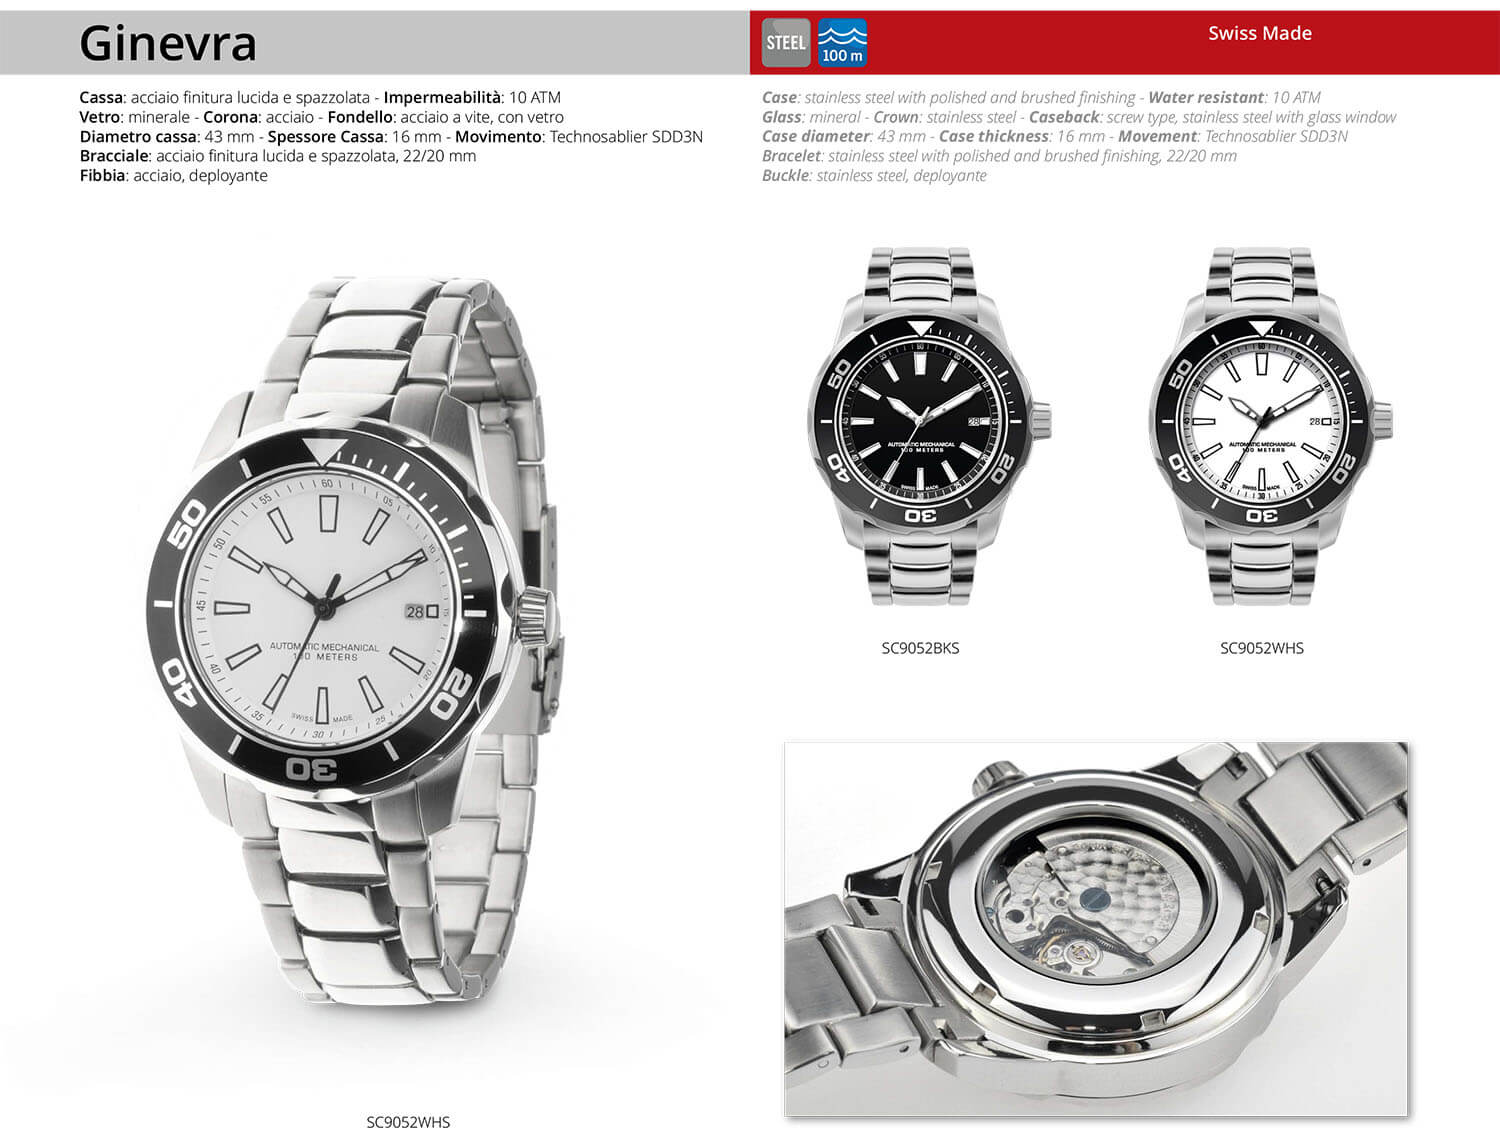 SC9052WHS and SC9052BKS watch Ginevra. Case: stainless steel with polished and brushed finishing - Water resistant: 10 ATM. Glass: mineral.